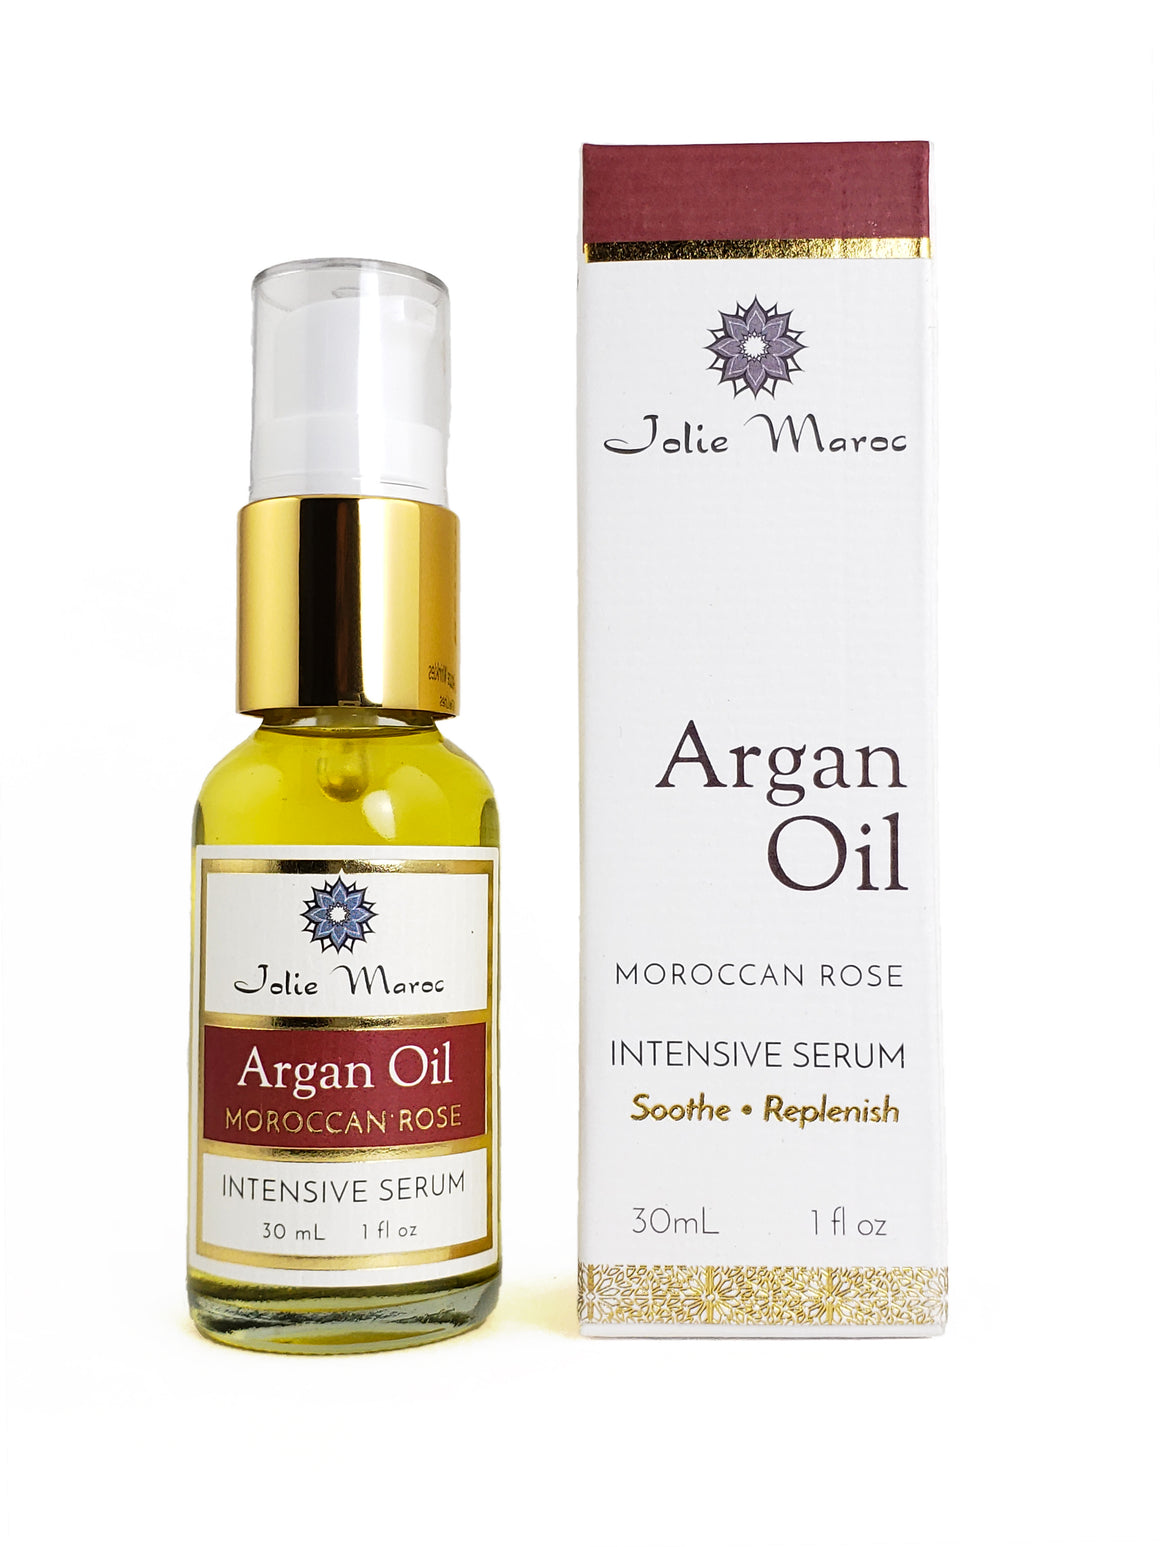 Moroccan Rose Argan Oil